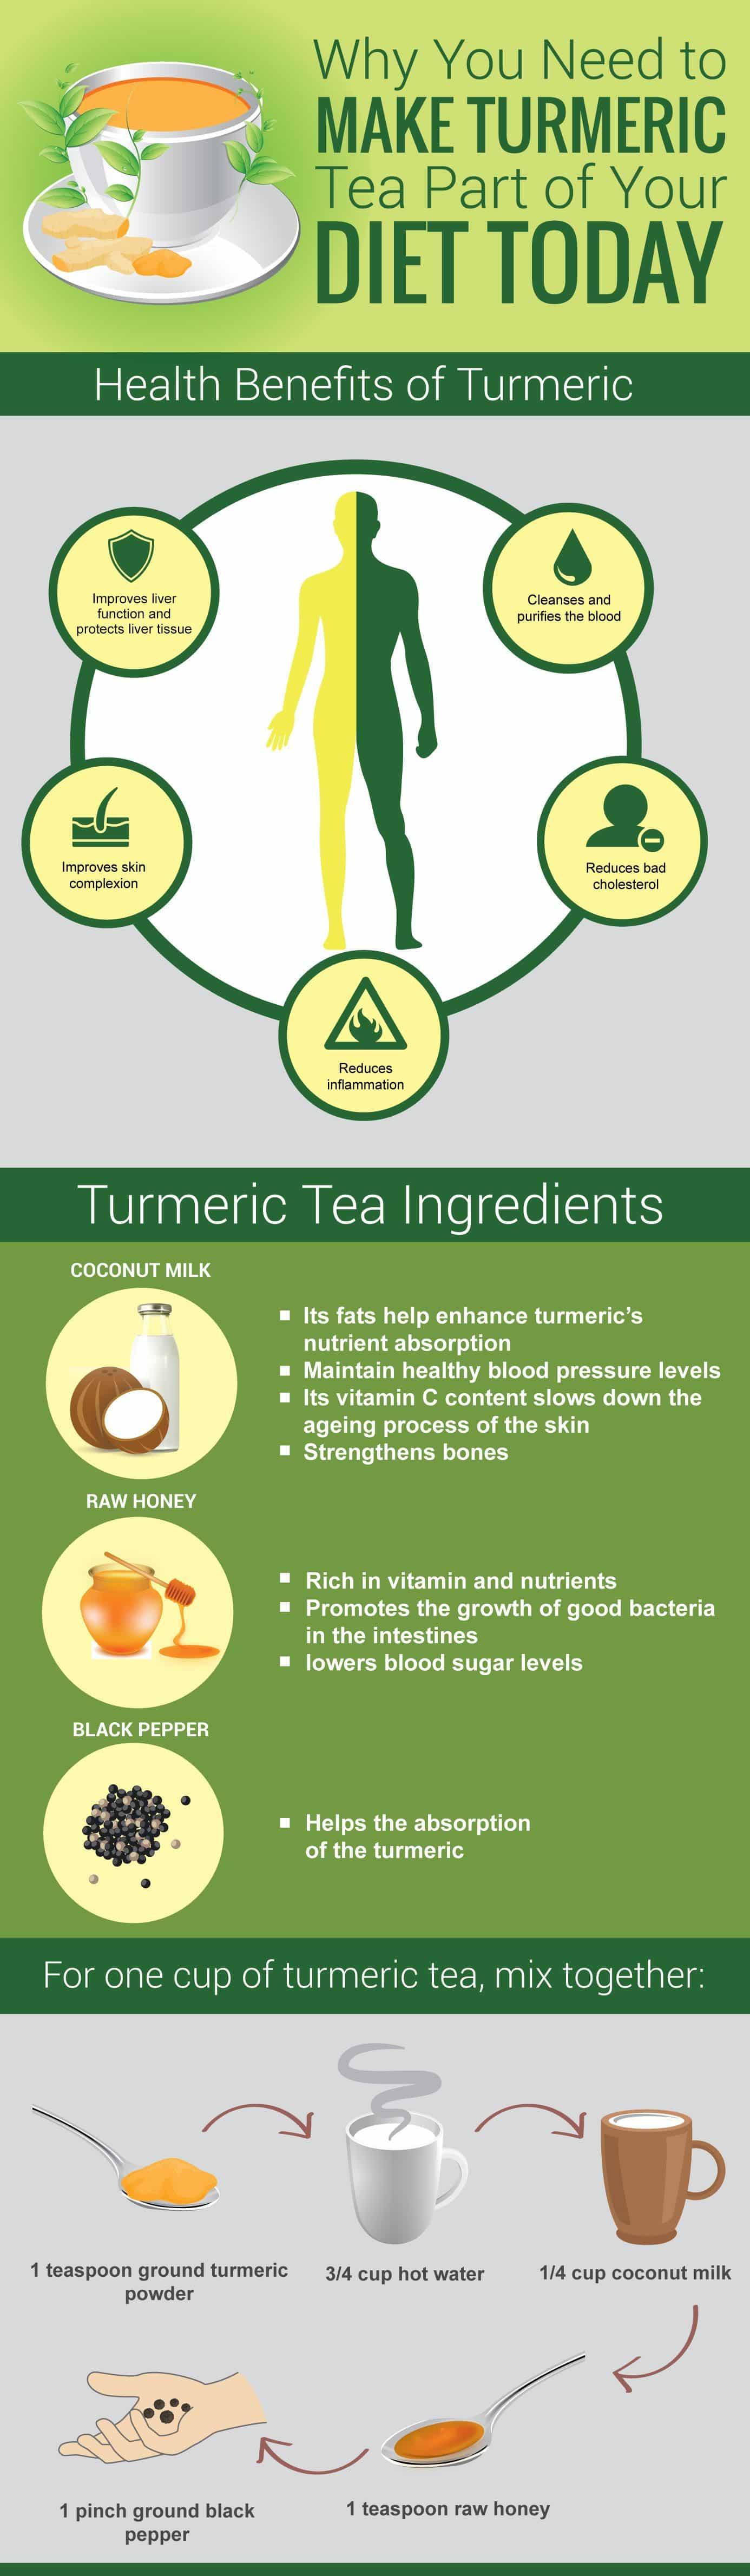 Turmeric Tea Benefits [Infographic] | ecogreenlove